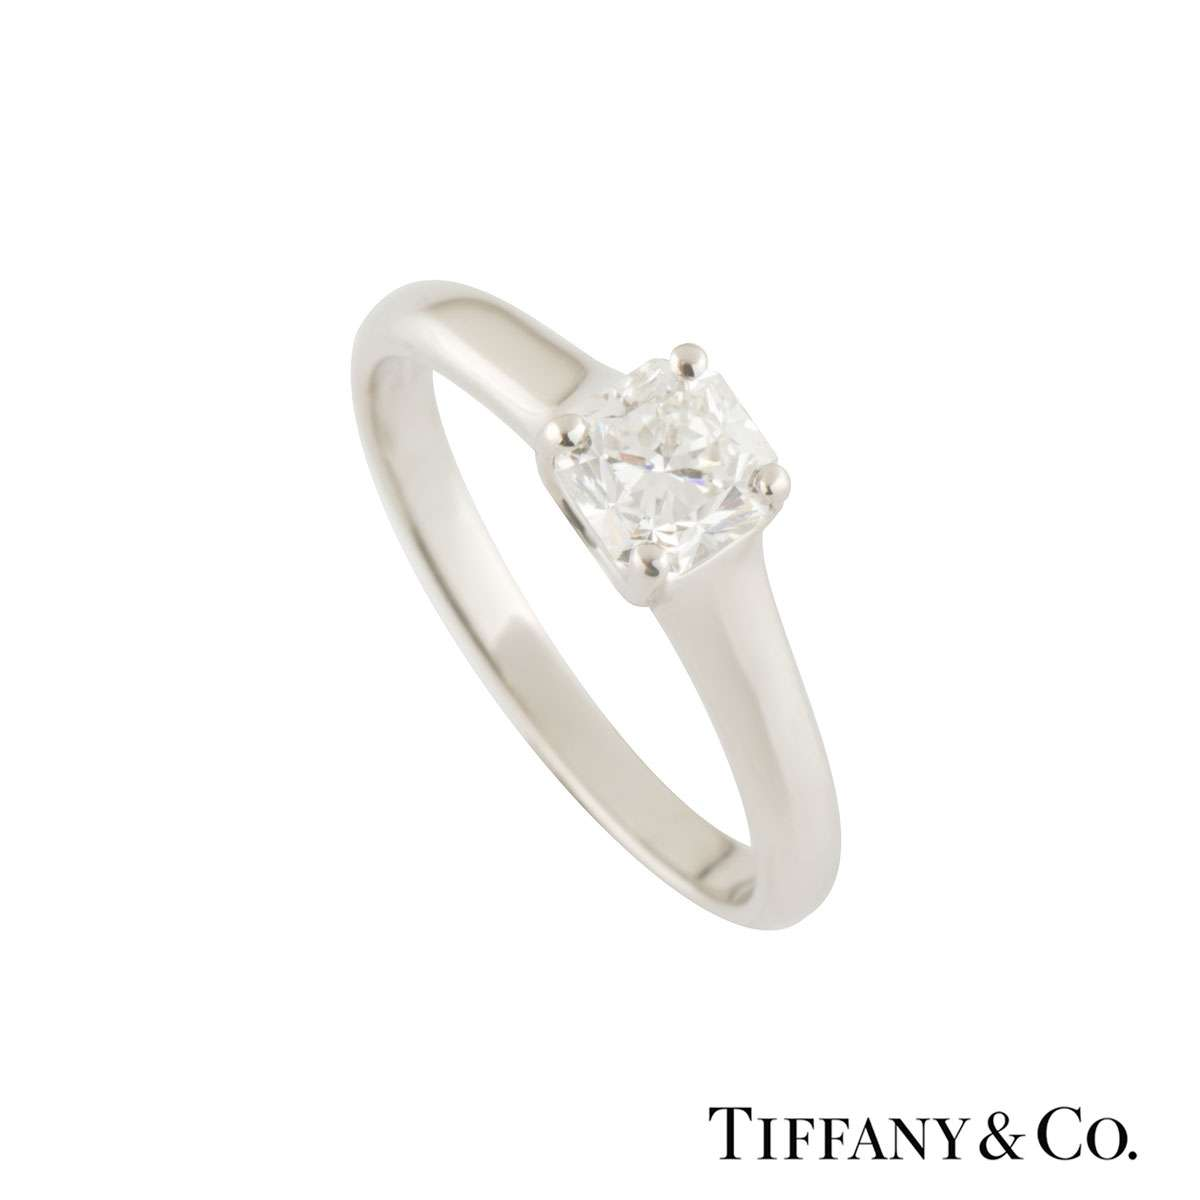 Tiffany & Co. Lucida Diamond Ring 0.79ct H/VVS1